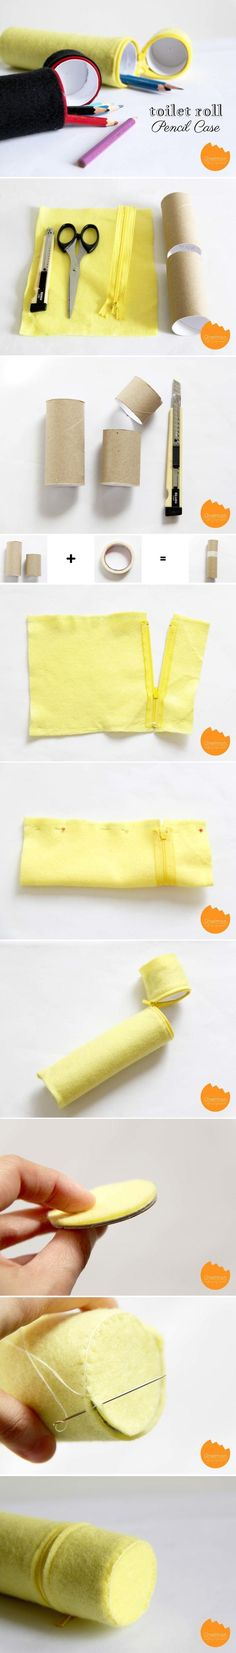 DIY Toilet Roll Pencil Case